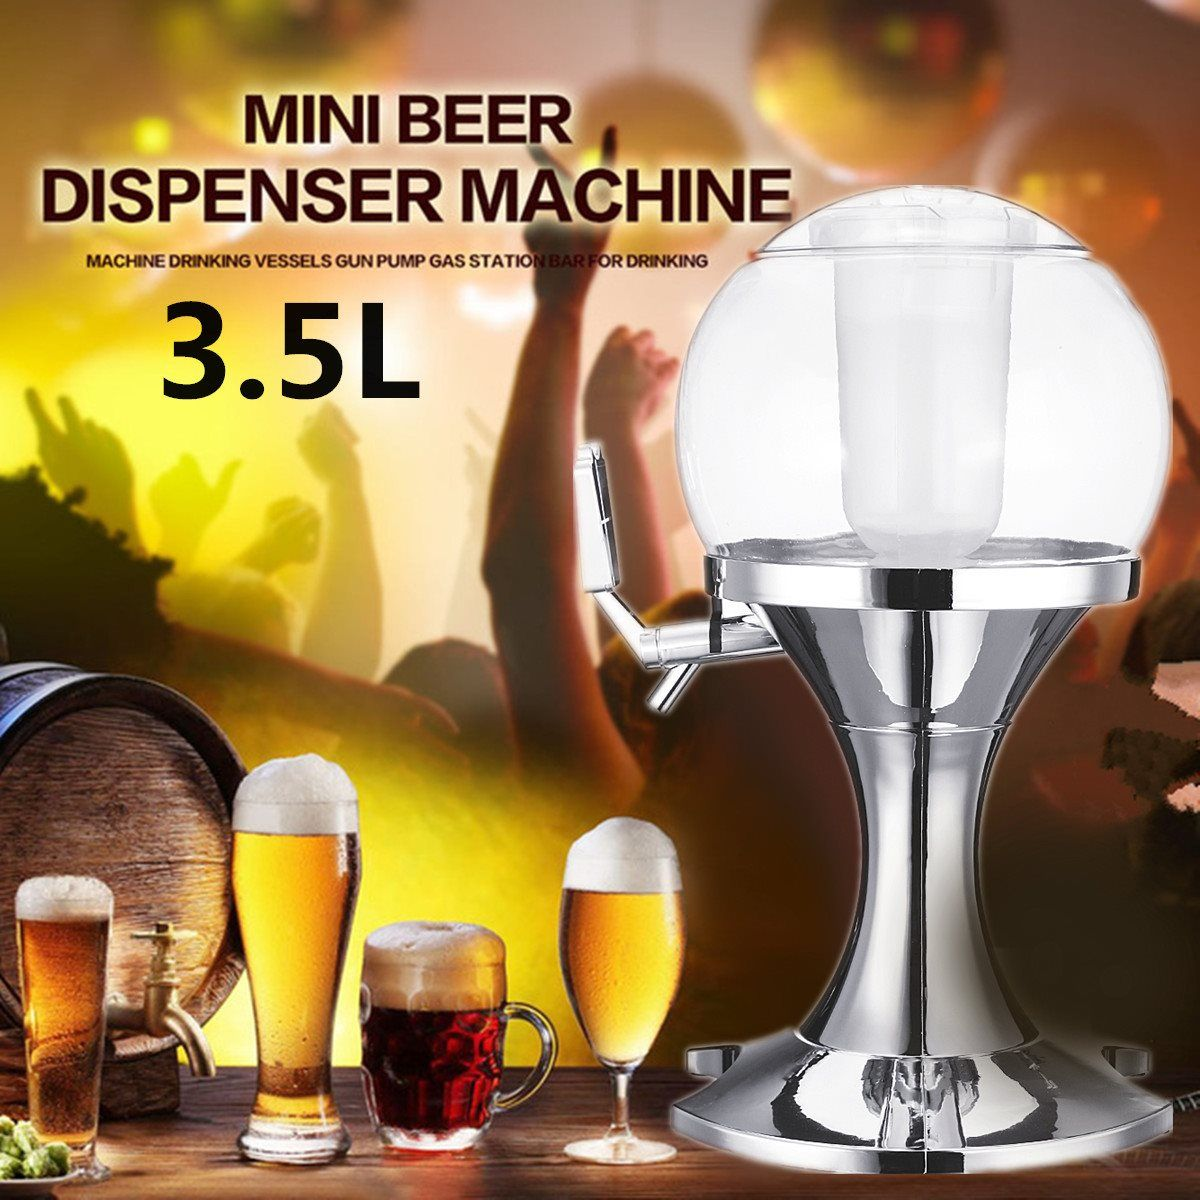 Silver Ice Core Beer Beverage Dispenser Whiskey Juice Pourer Machine Container Home Party Bar Tools Accessories Barware 3.5L